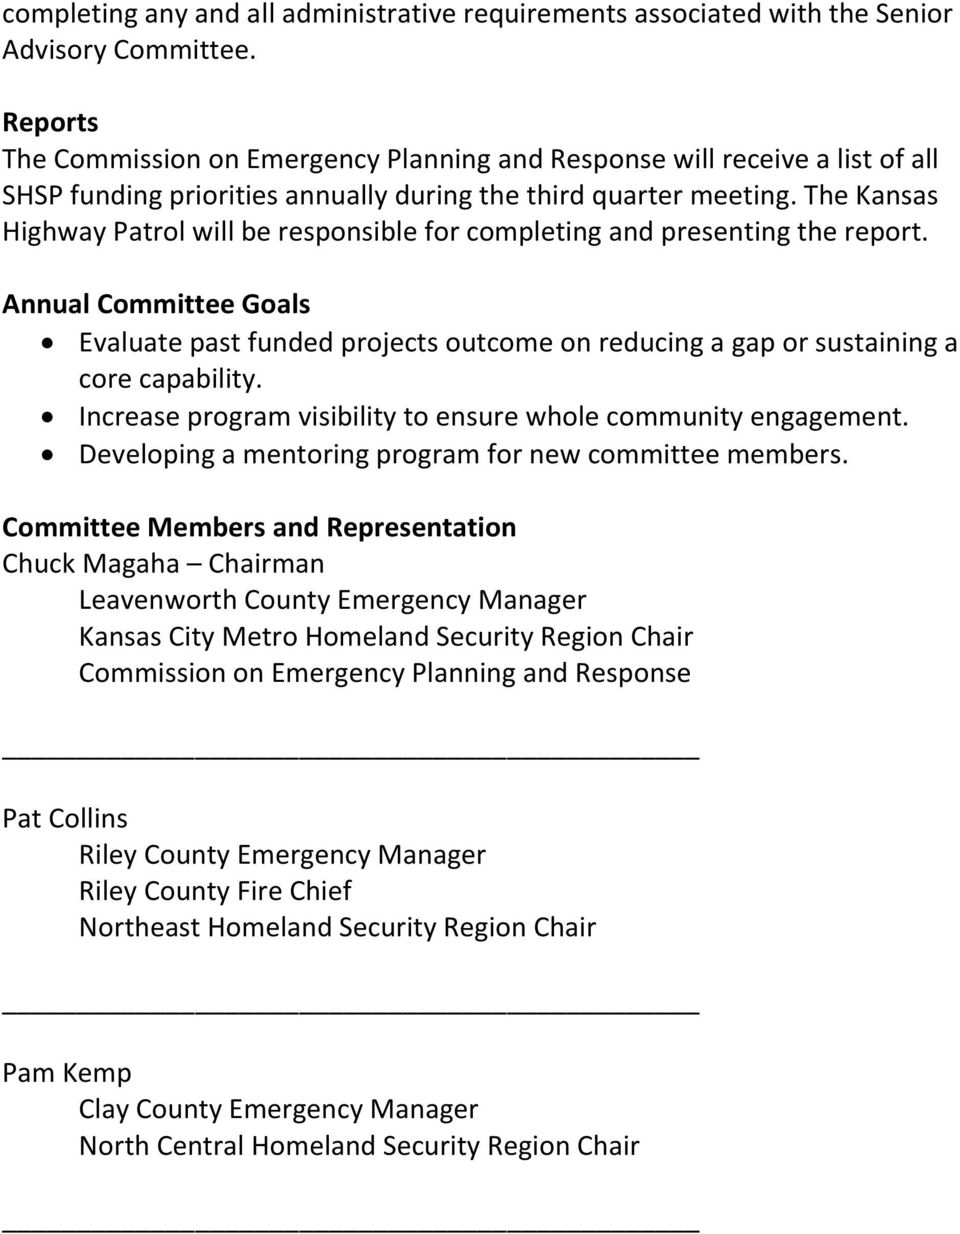 The Kansas Highway Patrol will be responsible for completing and presenting the report. Annual Committee Goals Evaluate past funded projects outcome on reducing a gap or sustaining a core capability.